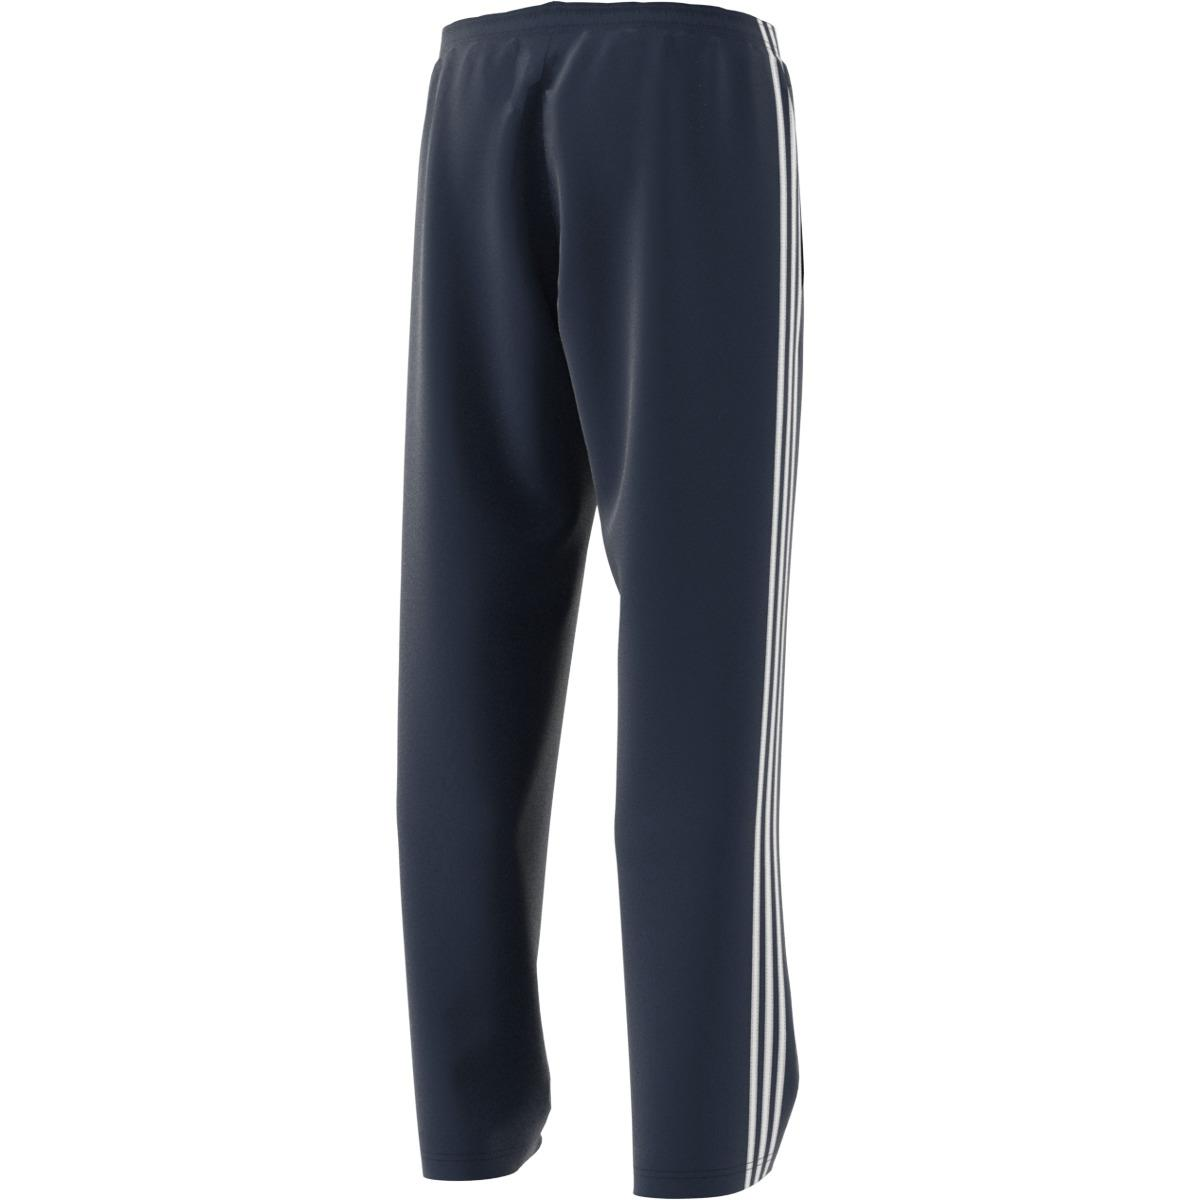 Ess For Lyst 3s Adidas R In Blue Tricot Trousers Men xxF5wq